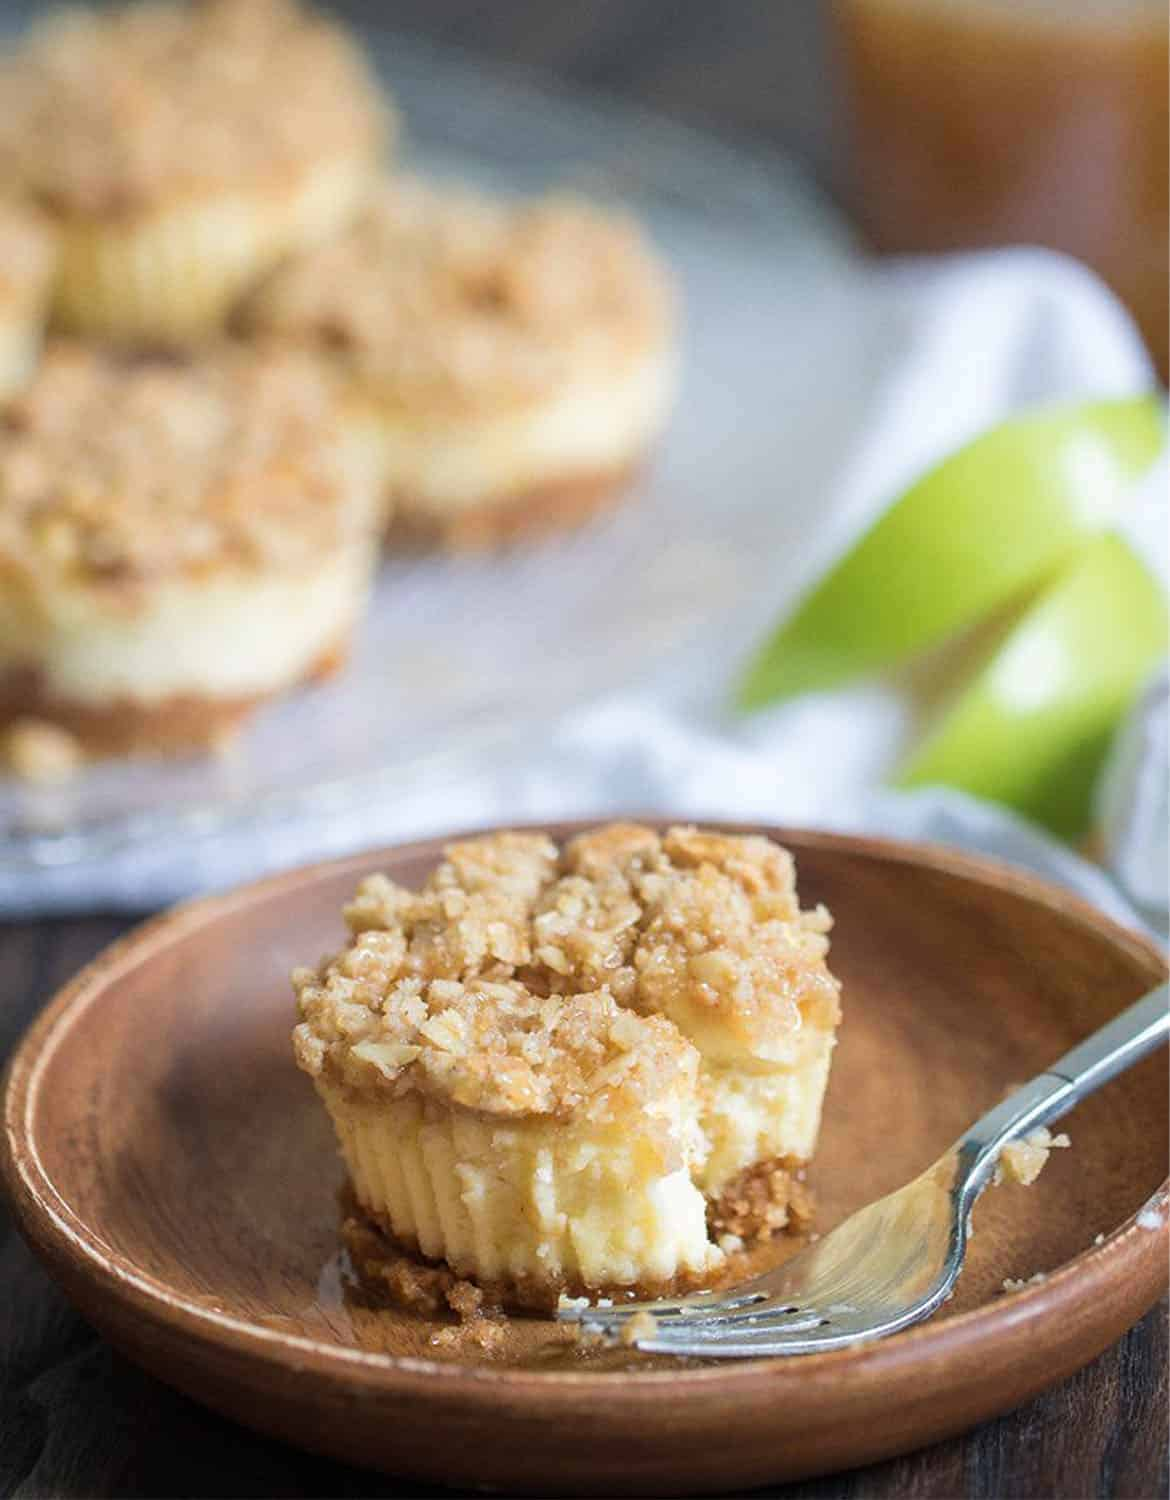 A caramel apple streusel cheesecake bites on a brown plate - Orchidsandsweetea